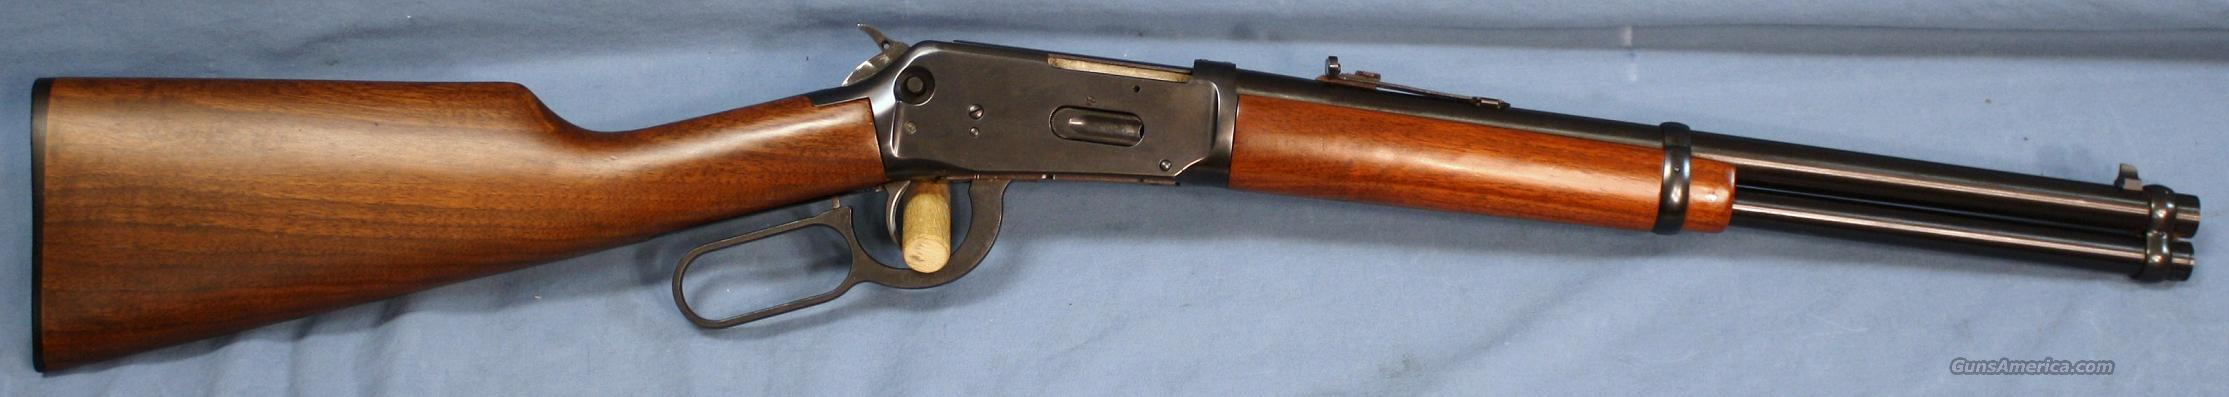 Winchester Model 94 Saddle Ring Trapper AE Lever Action Rifle .45 Colt Made in 1984  Guns > Rifles > Winchester Rifles - Modern Lever > Model 94 > Post-64